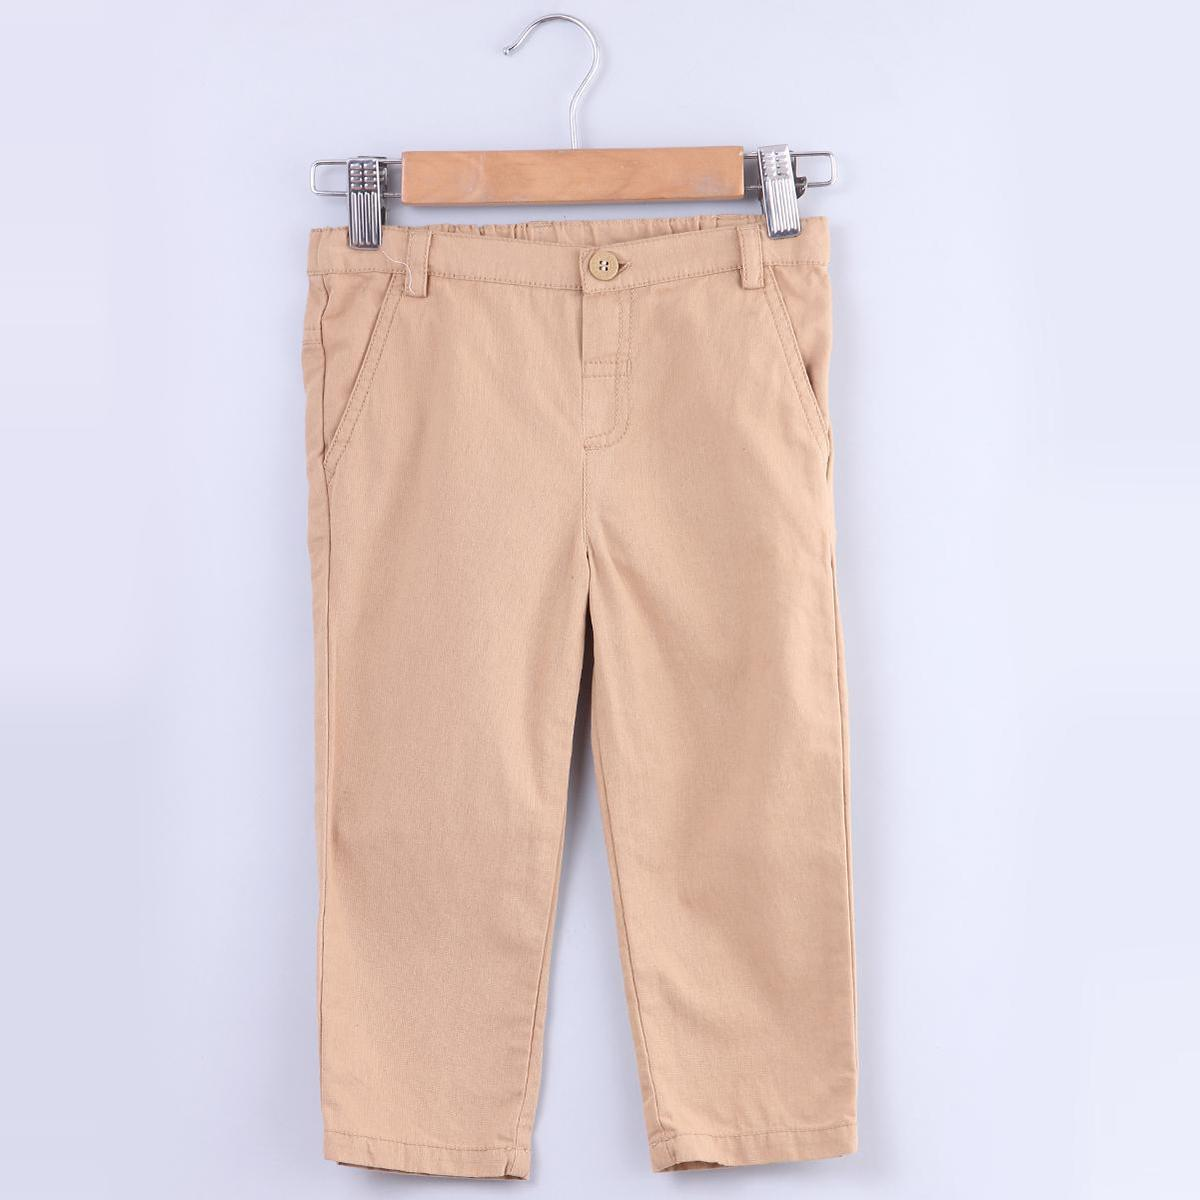 Beebay - Beige Colored Tan Beige Chino Cotton Stretchable Trousers For Kids Boys